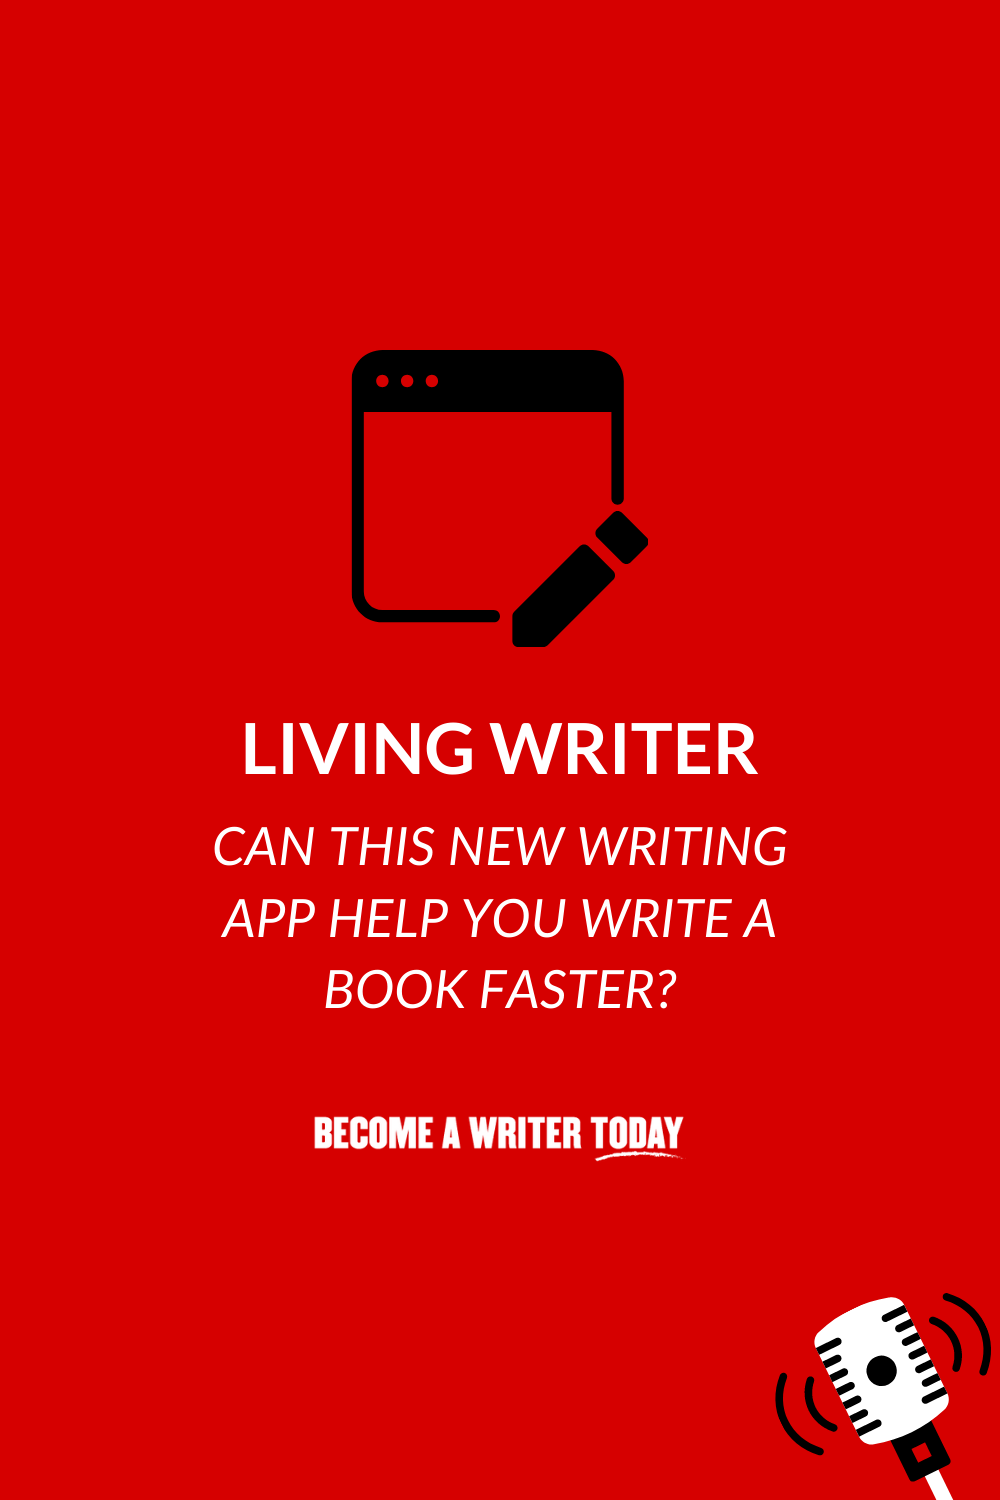 Living Writer: Can This New Writing App Help You Write a Book Faster?